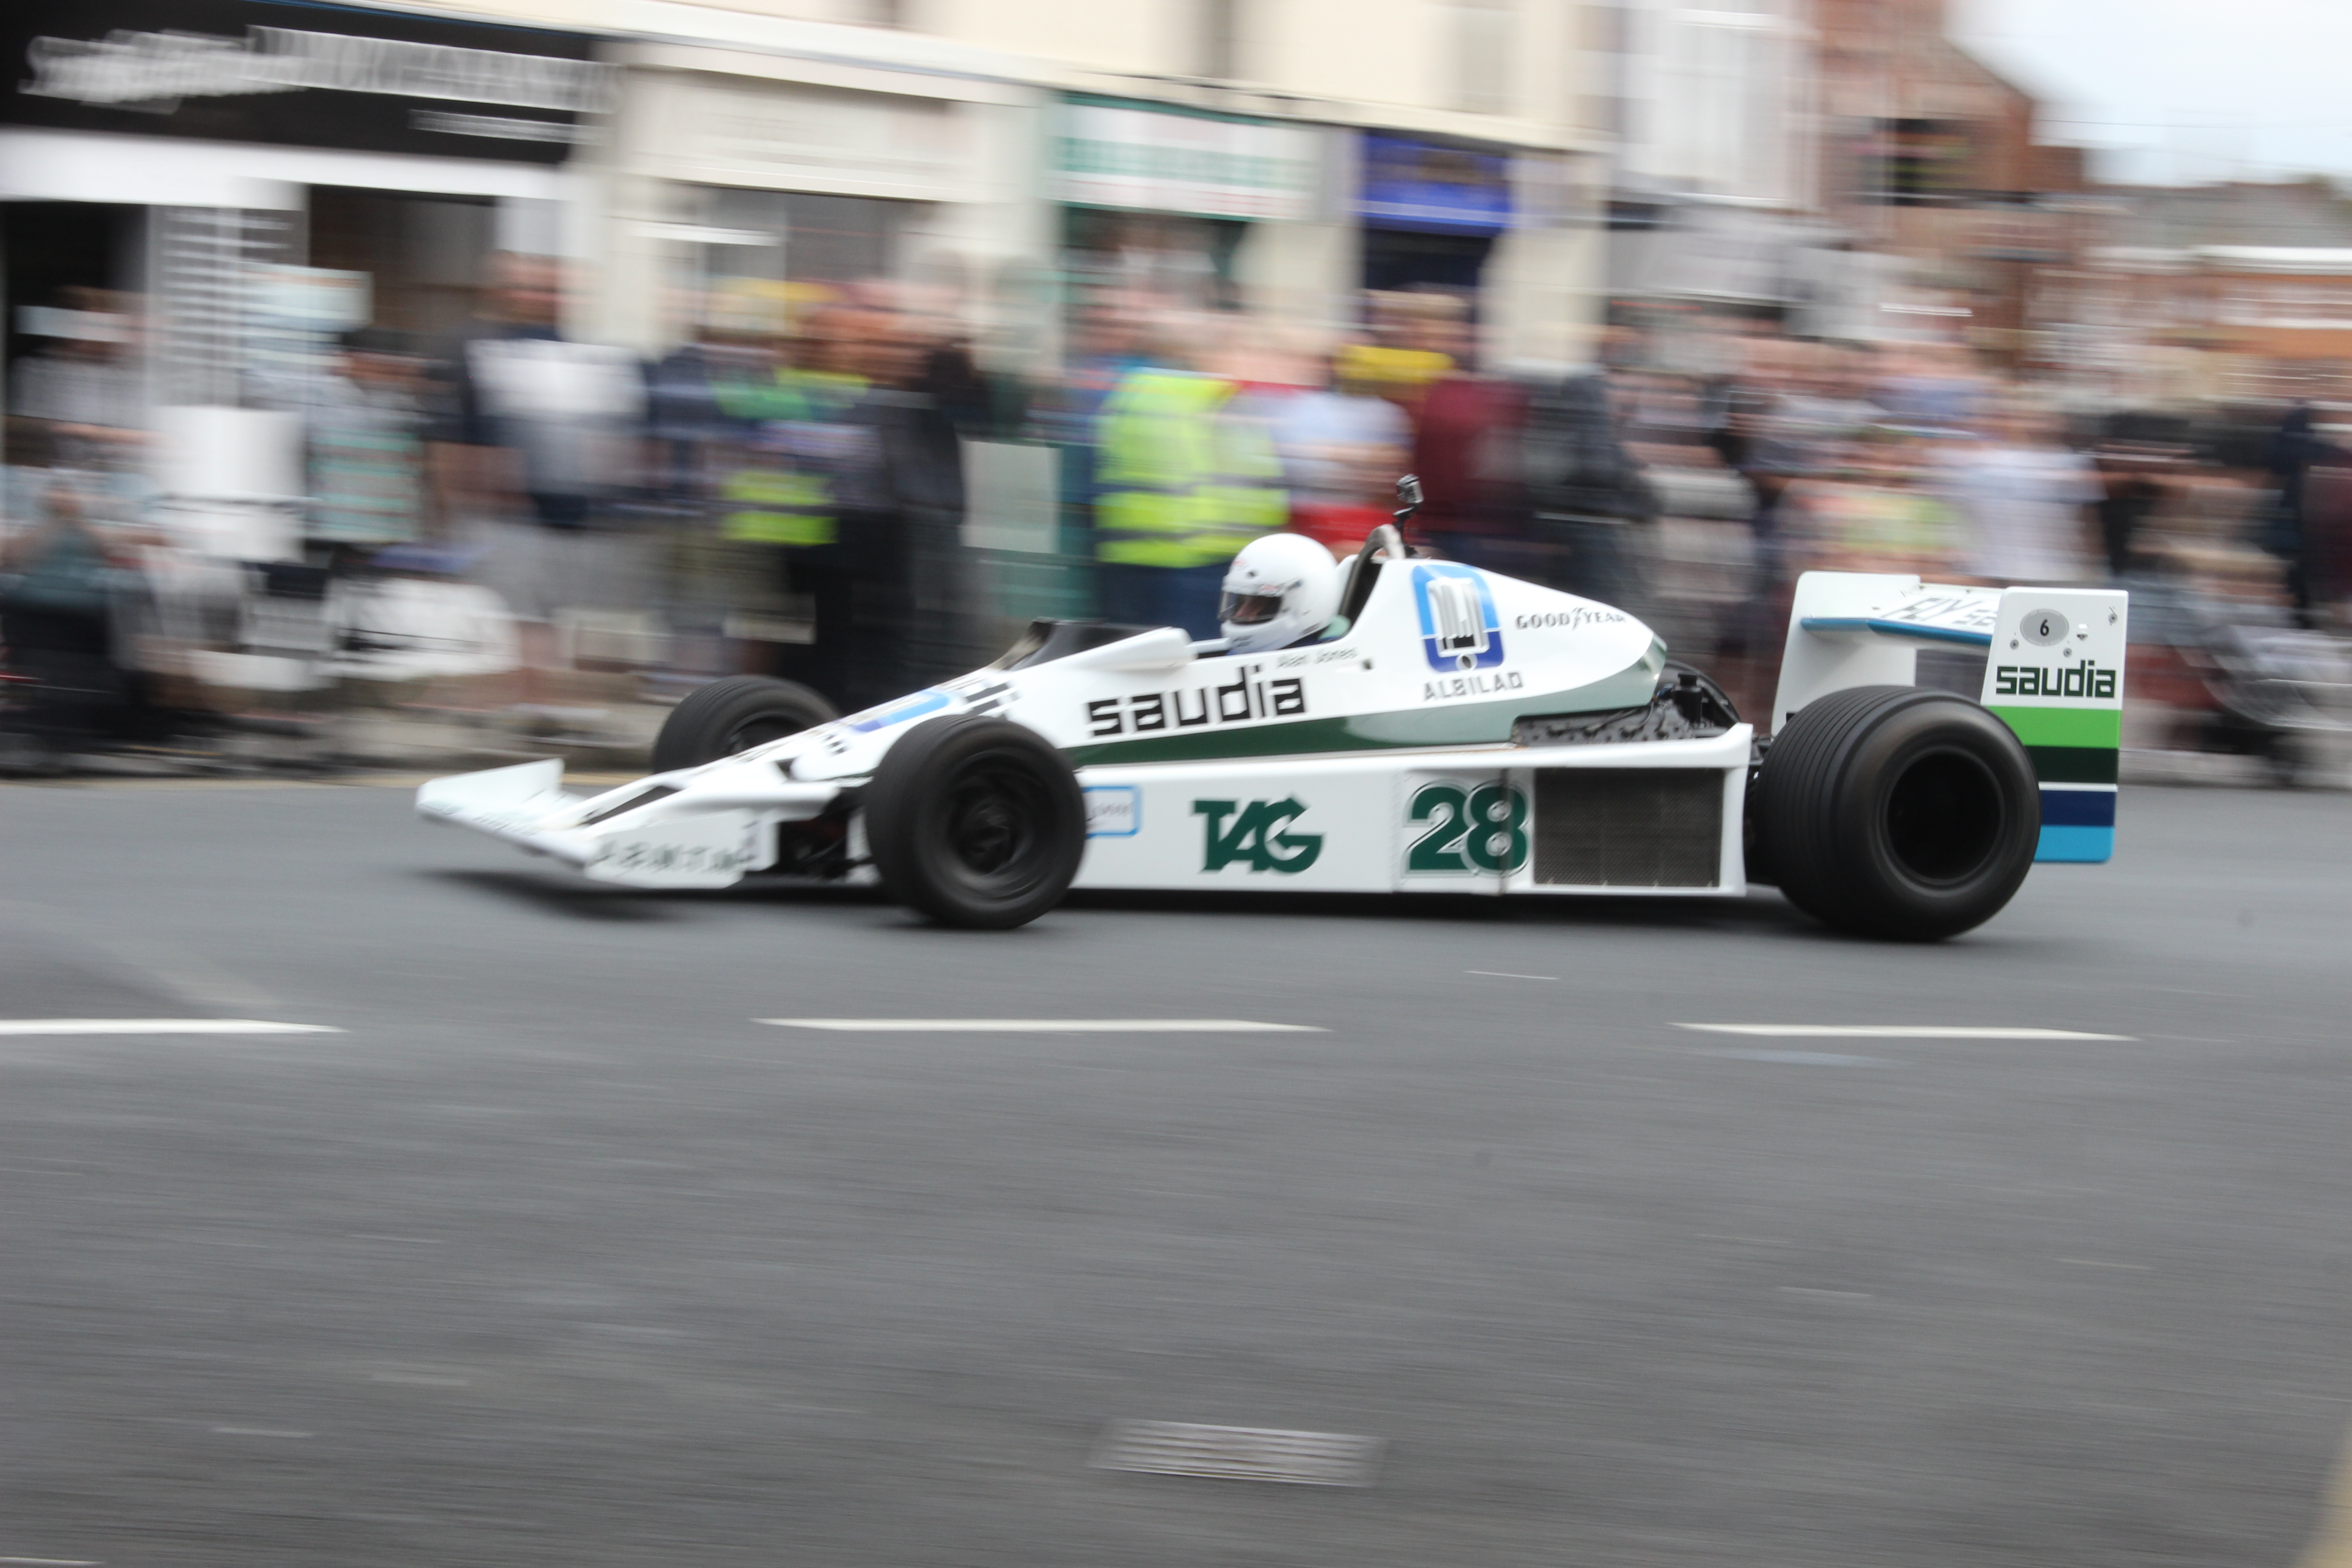 F1 cars have long been a big draw at the Ormskirk MotorFest